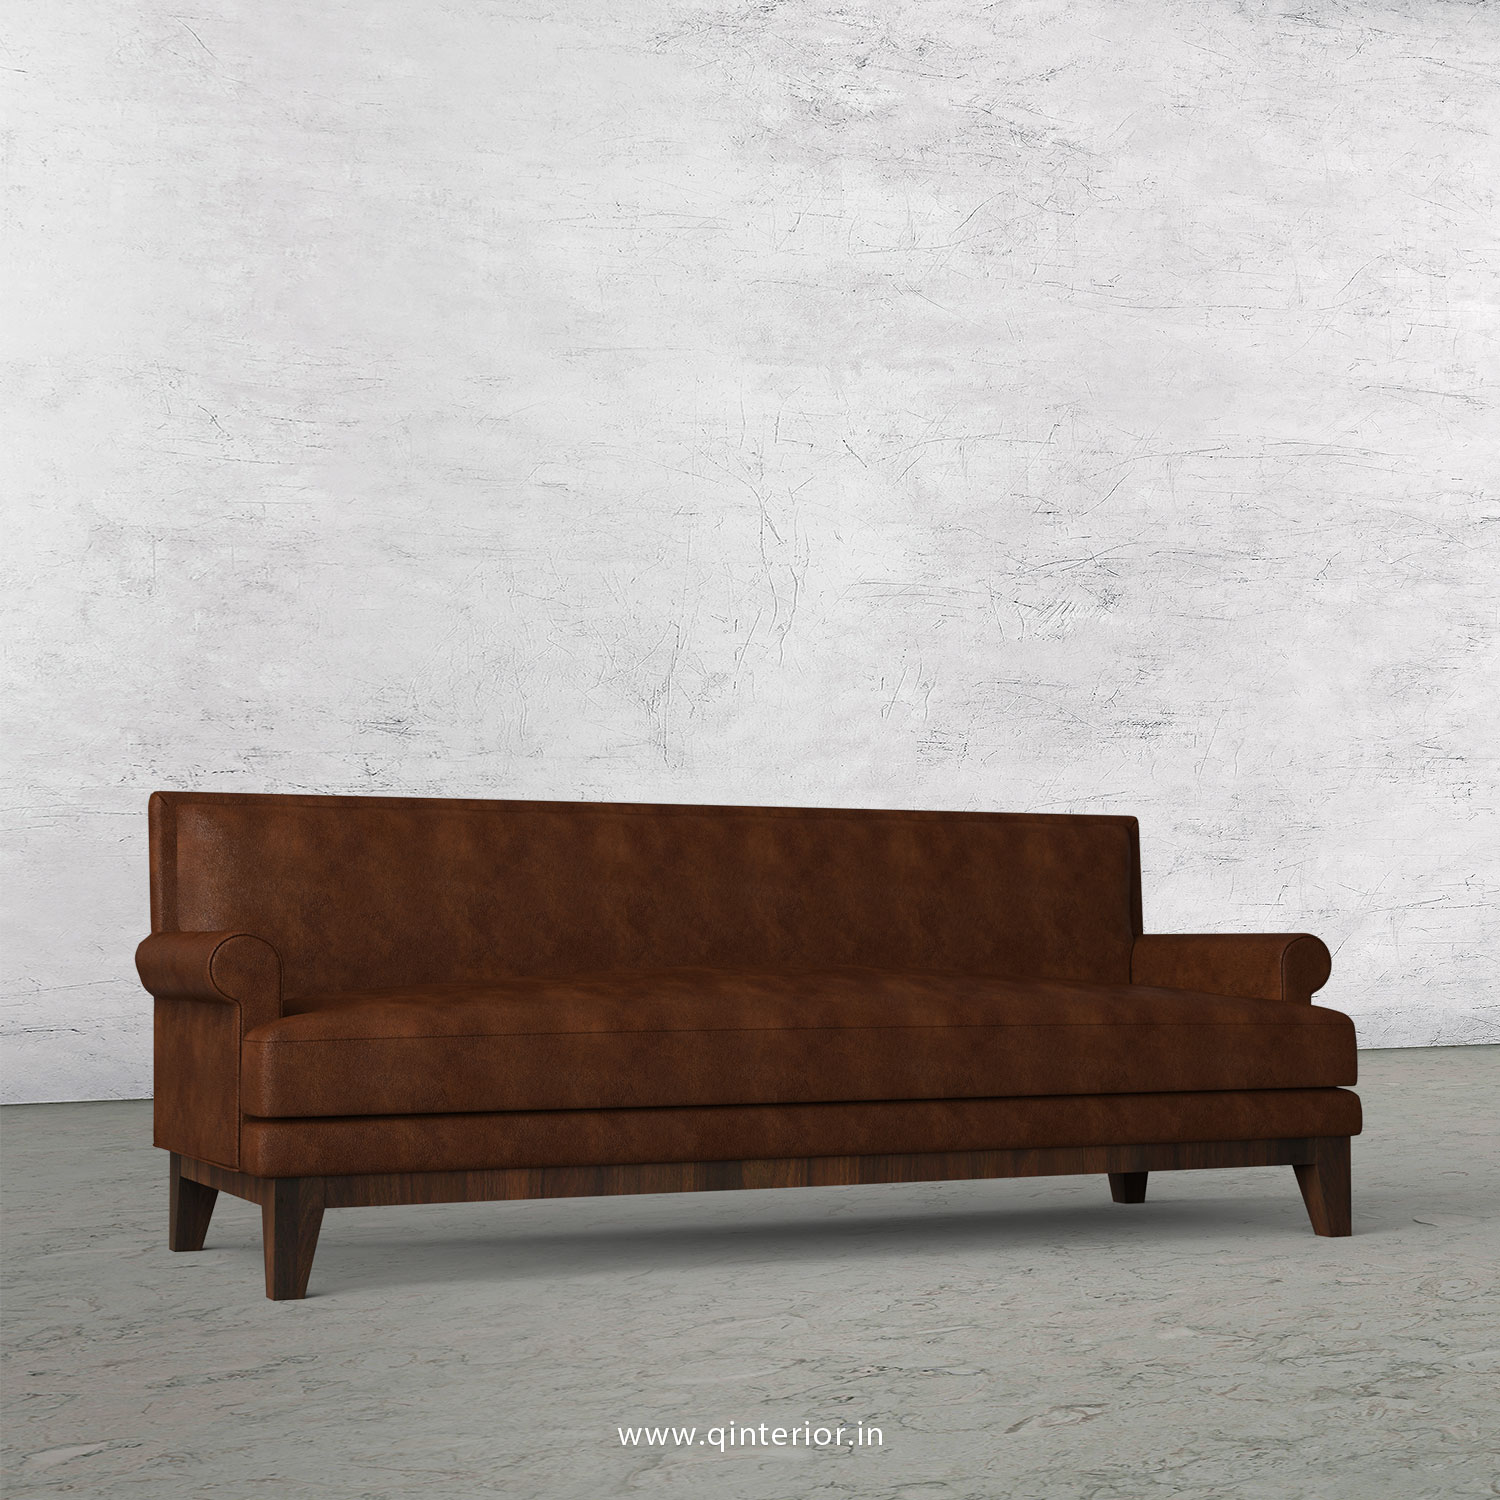 Aviana 3 Seater Sofa in Fab Leather Fabric - SFA001 FL09